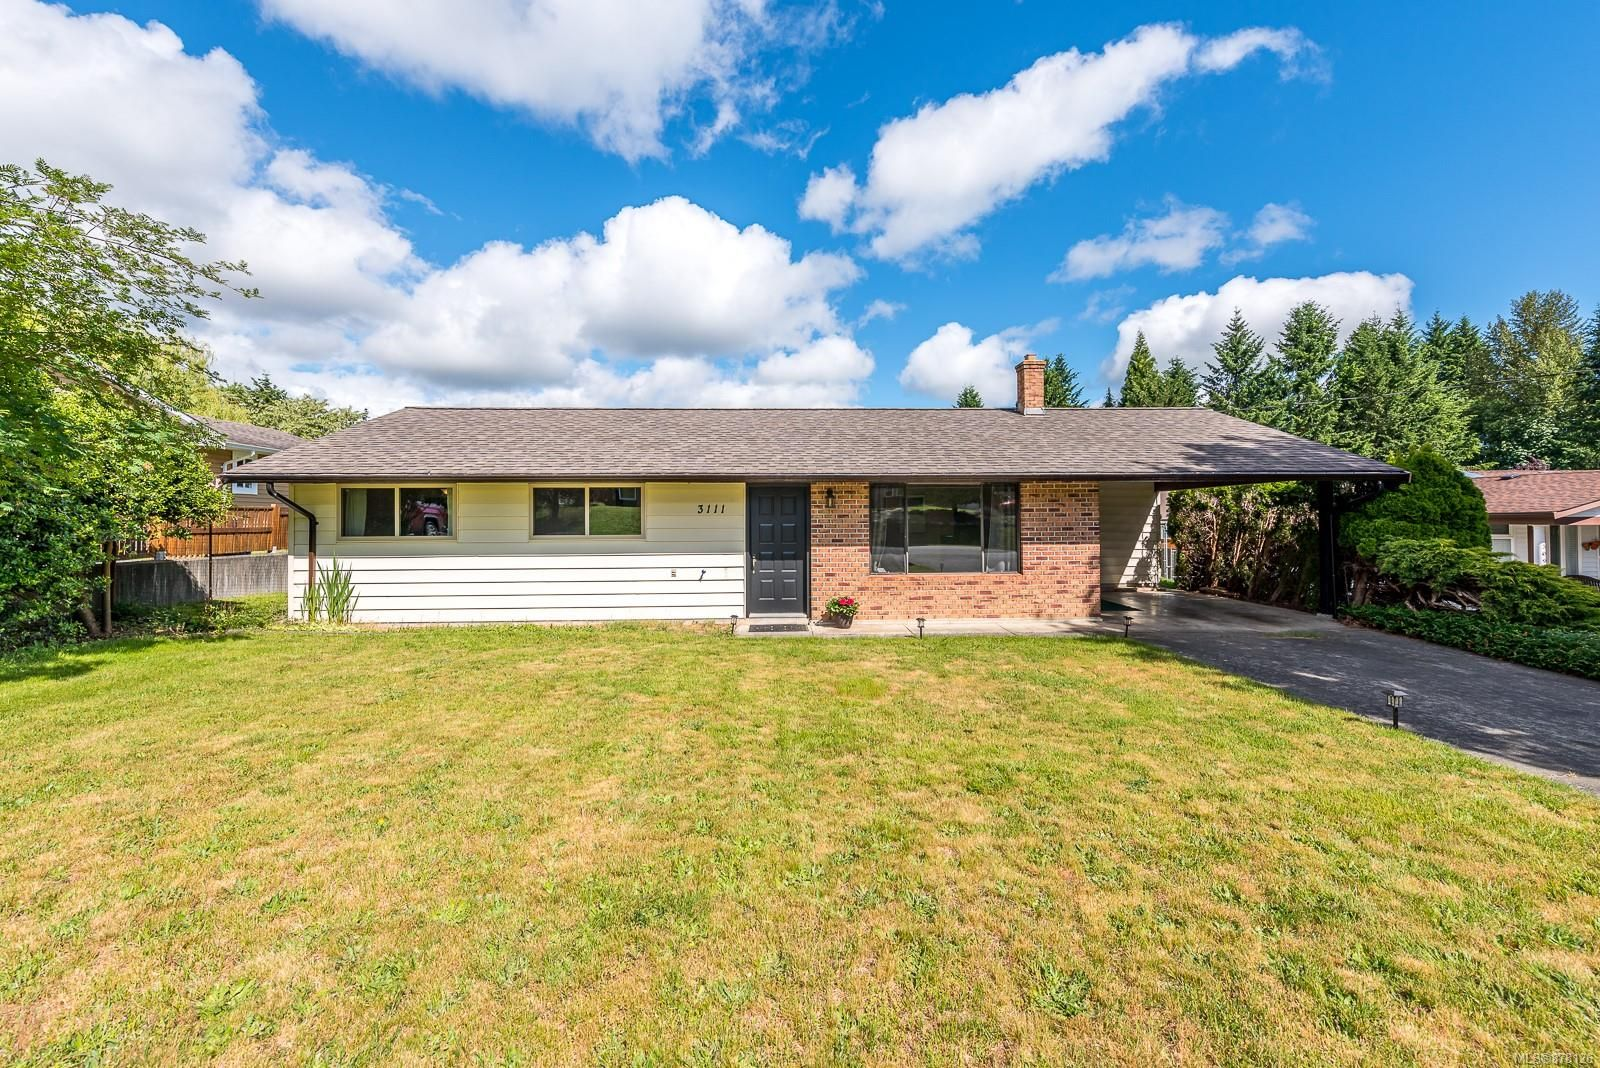 Main Photo: 3111 Bood Rd in : CV Courtenay West House for sale (Comox Valley)  : MLS®# 878126